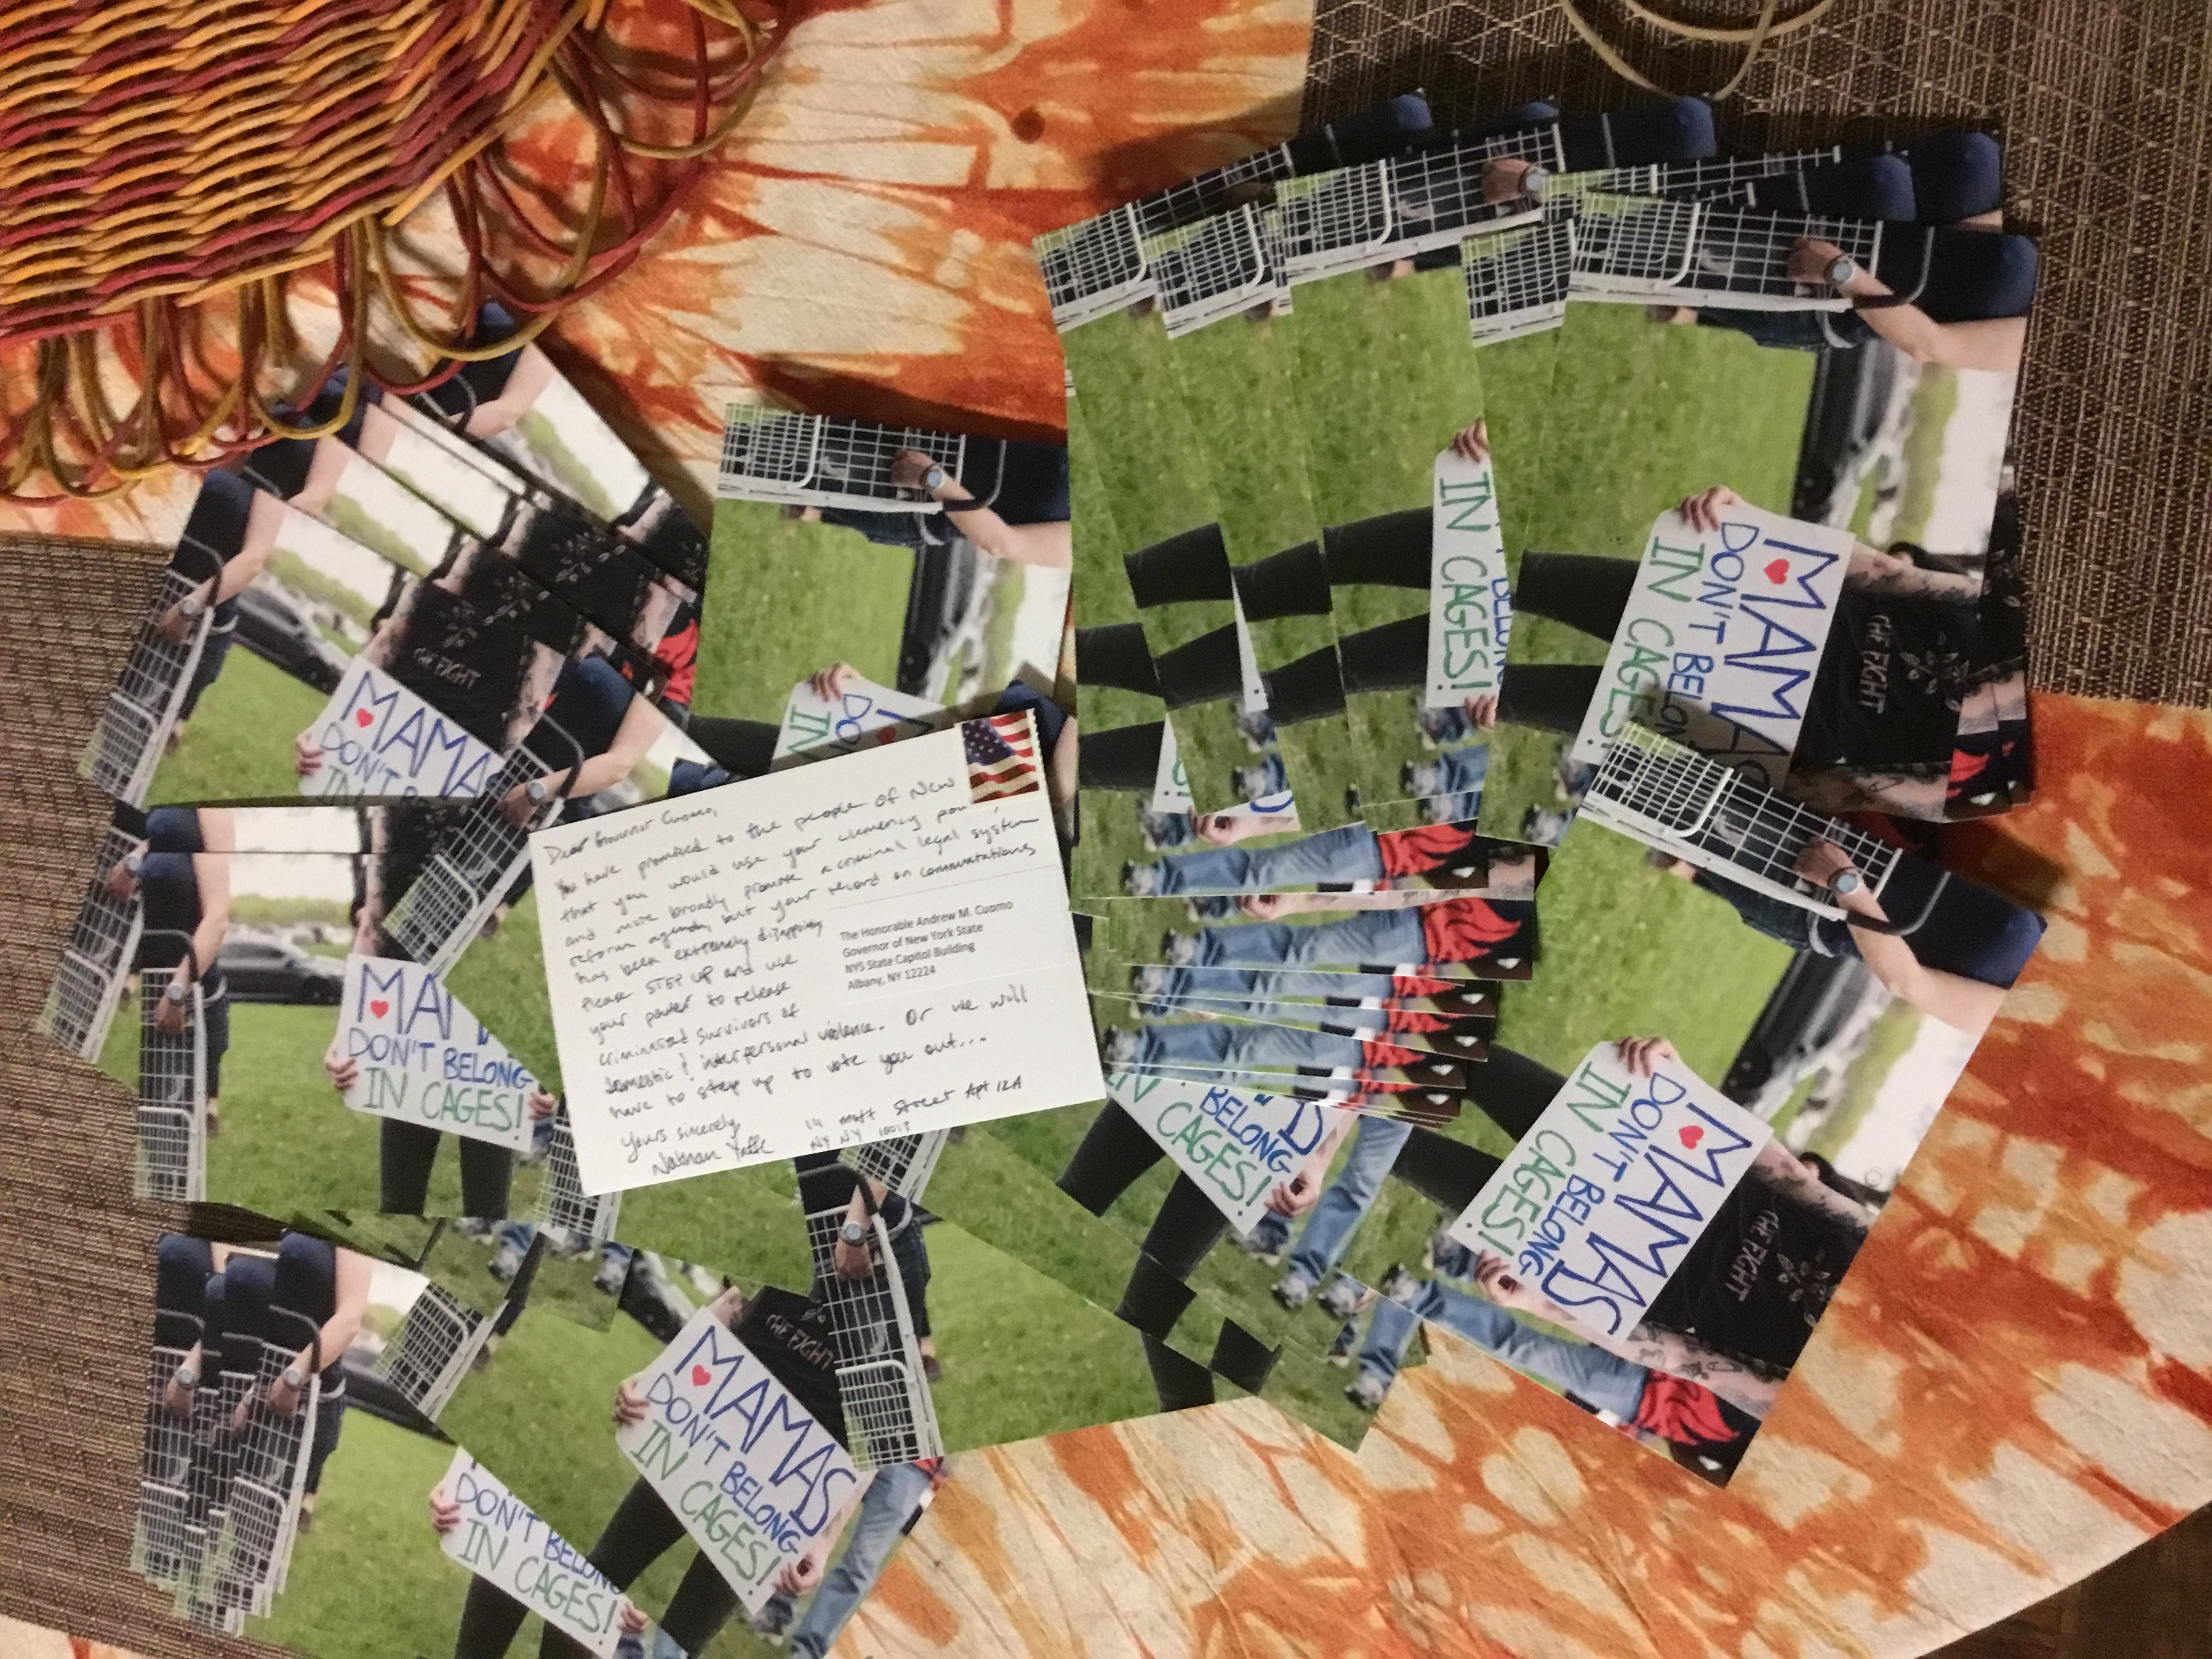 A picture of a large amount of survived and punished postcards in support of our campaign. Each postcard has art on the front including a person holding a sign saying: mamas don't belong in cages. One postcard is turned over to its back, with writing on it addressed to Governor Cuomo urging him to free survivors.